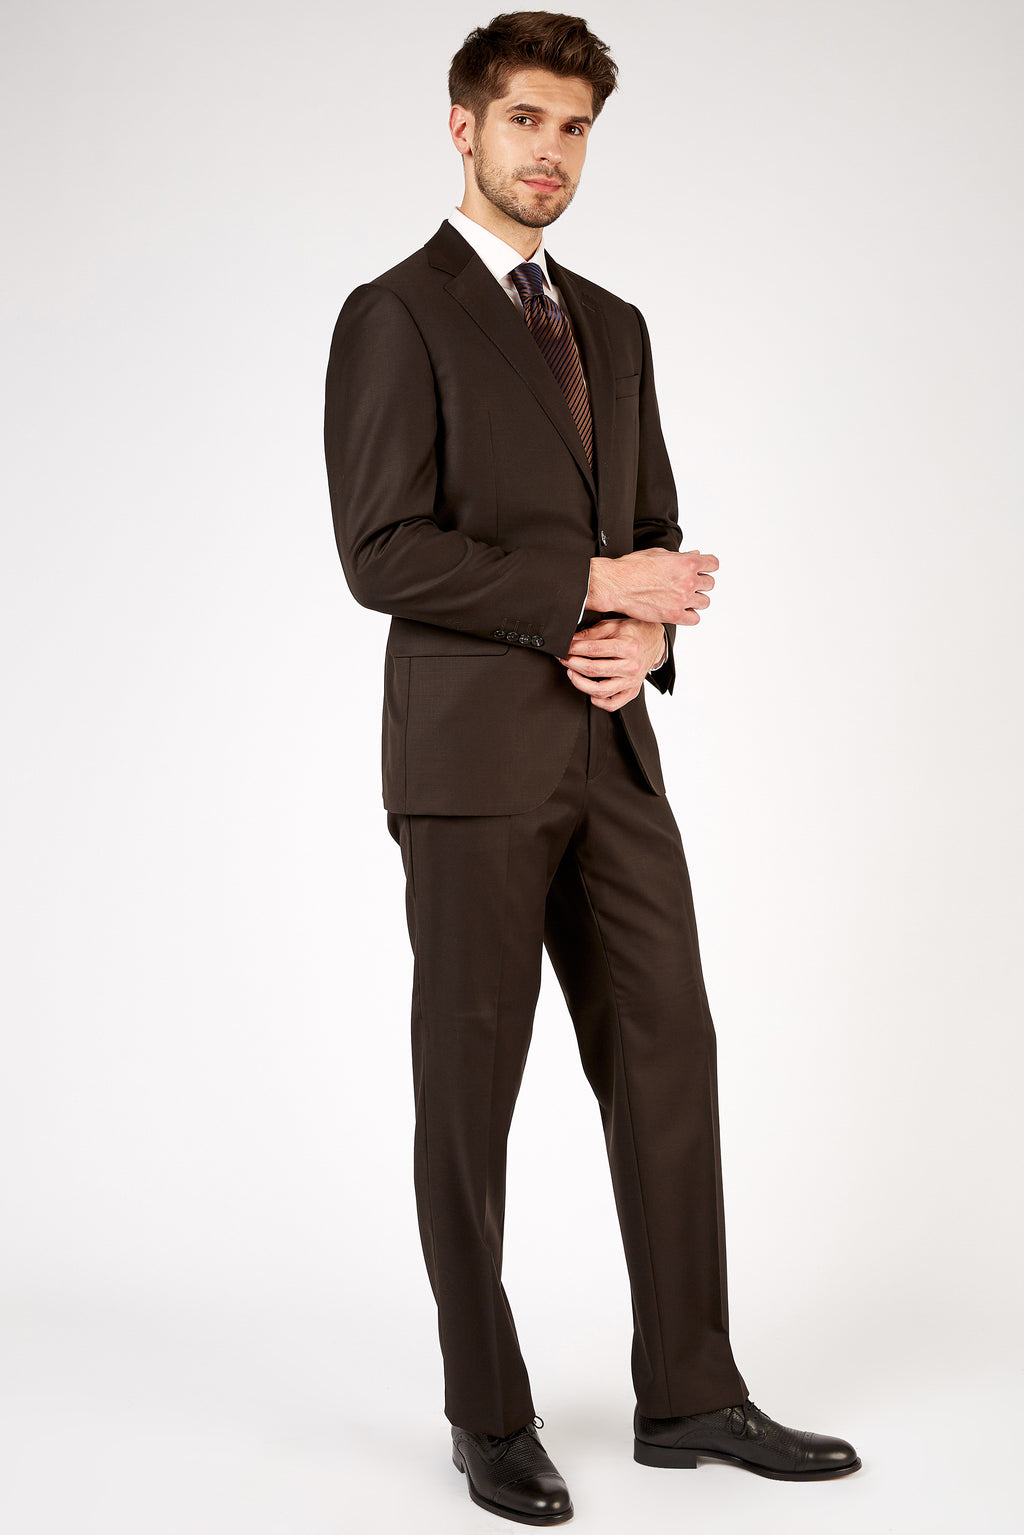 Romano Botta Classic Fit Two-Button Plain Brown Italian Suit